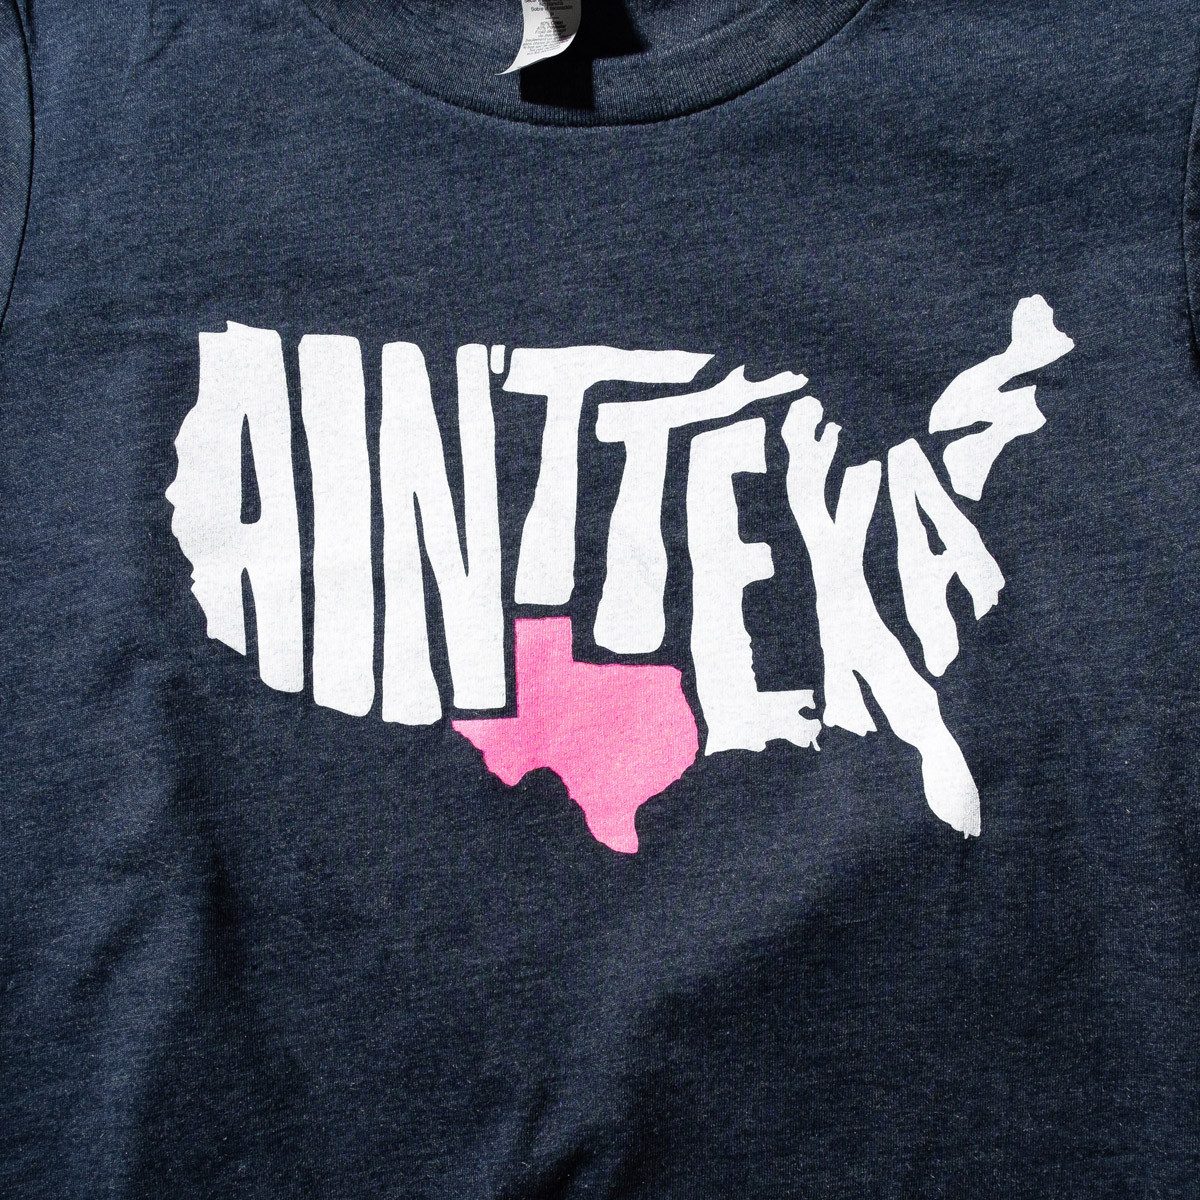 shirt depicts the u.s. with Texas apparent and the rest marked ain't texas